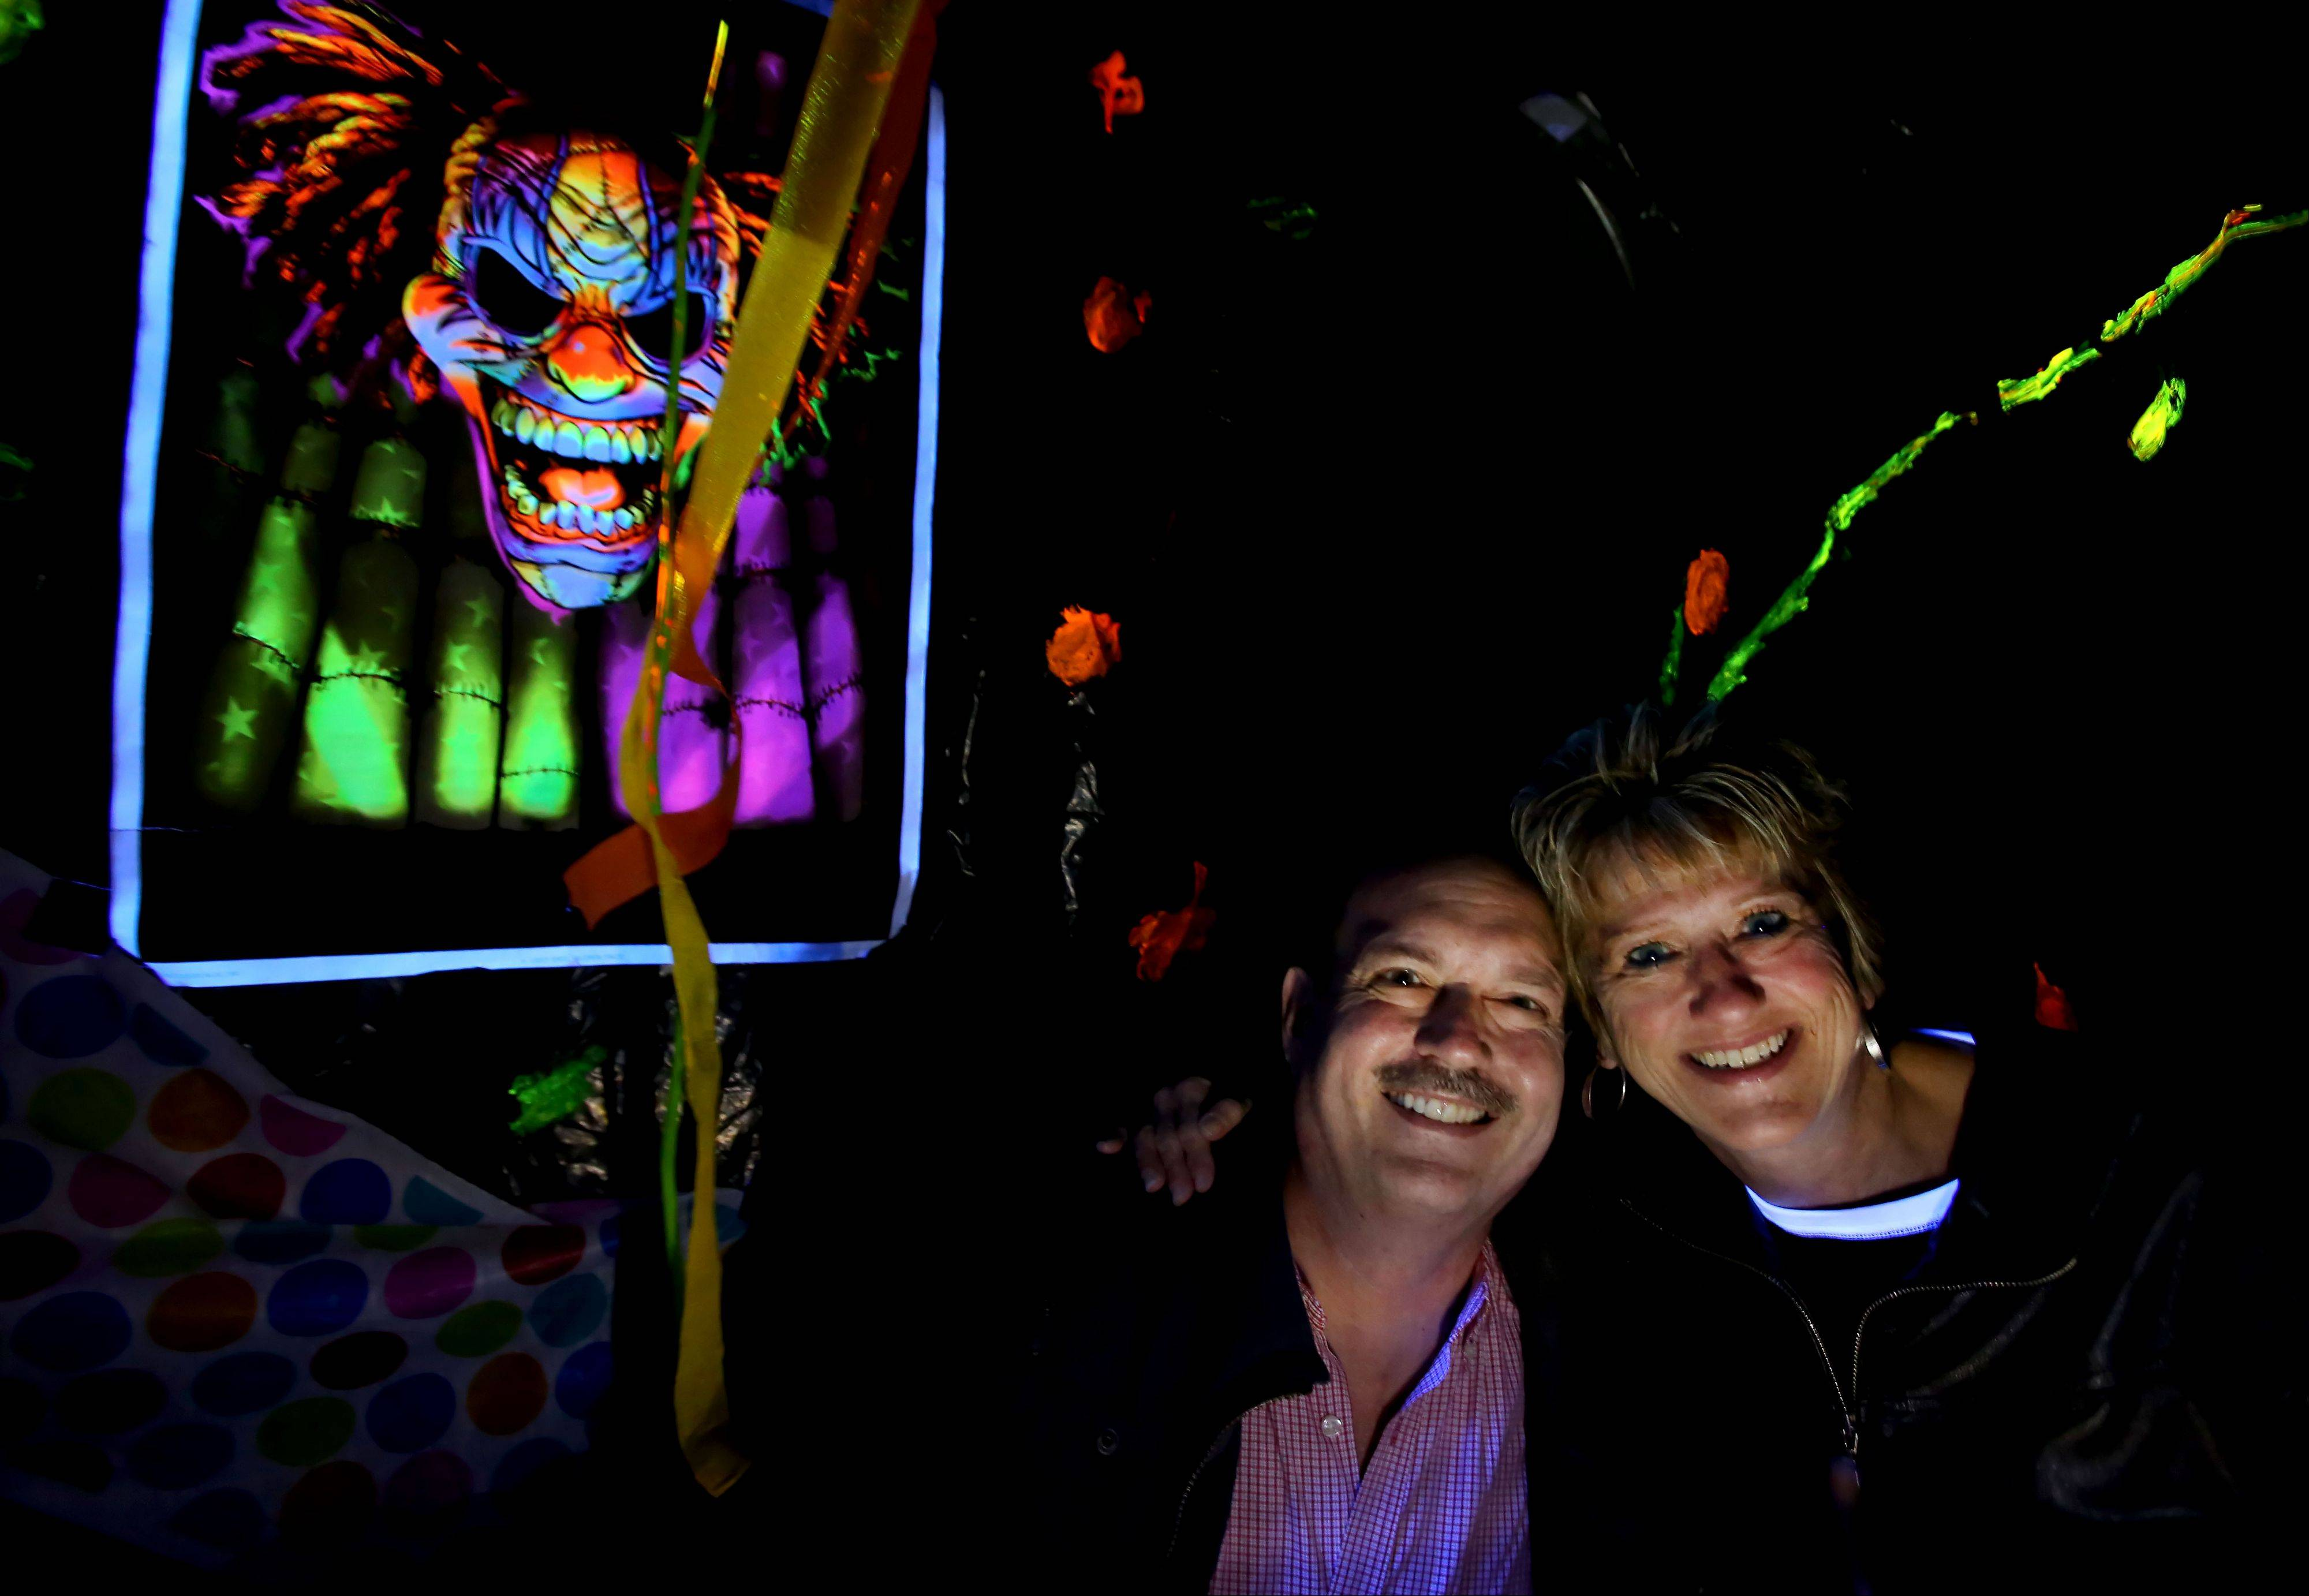 Larry and Liz Hunka have set up a haunted garage in their Wheaton home for the past 13 years. This is the last year of the Halloween tradition since their son will be going off to college next year.